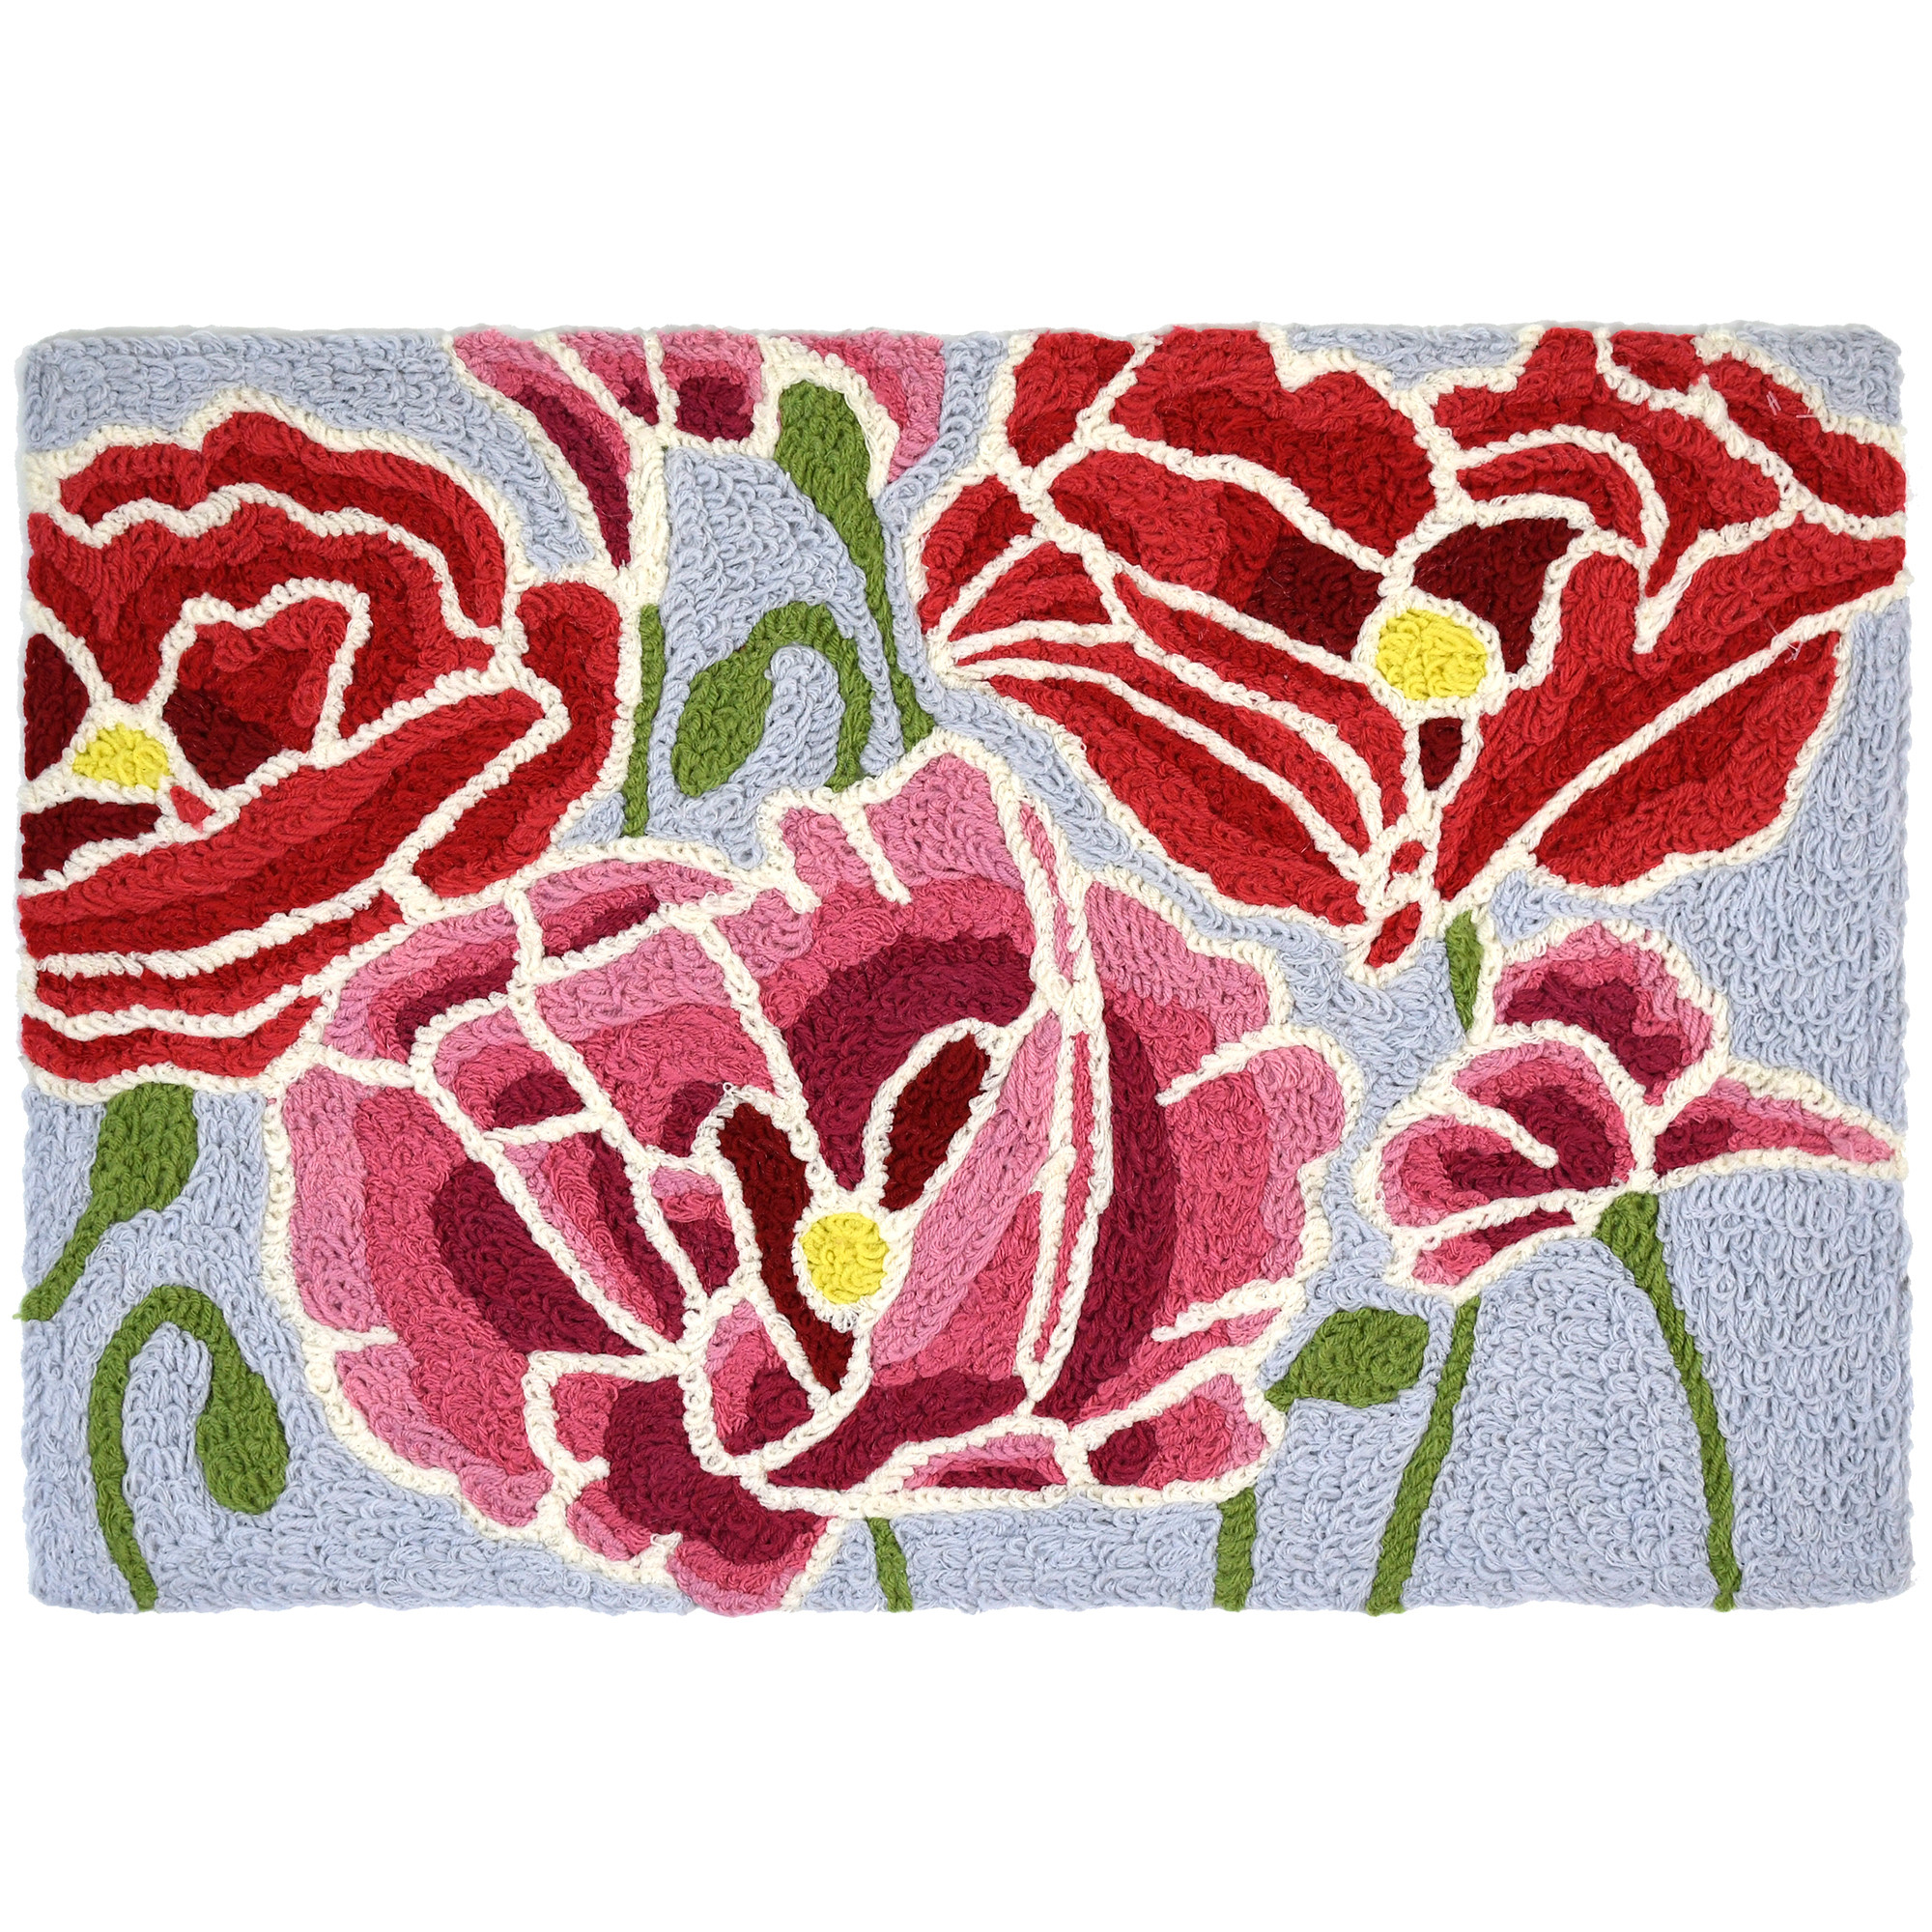 Imagery as bright as the fragrance, pink and red poppies dance across this Jellybean® accent rug. Enjoy the blooms indoors and outdoors with this fitting accent rug. Jellybean® accent rugs are machine washable with polyester crafting.